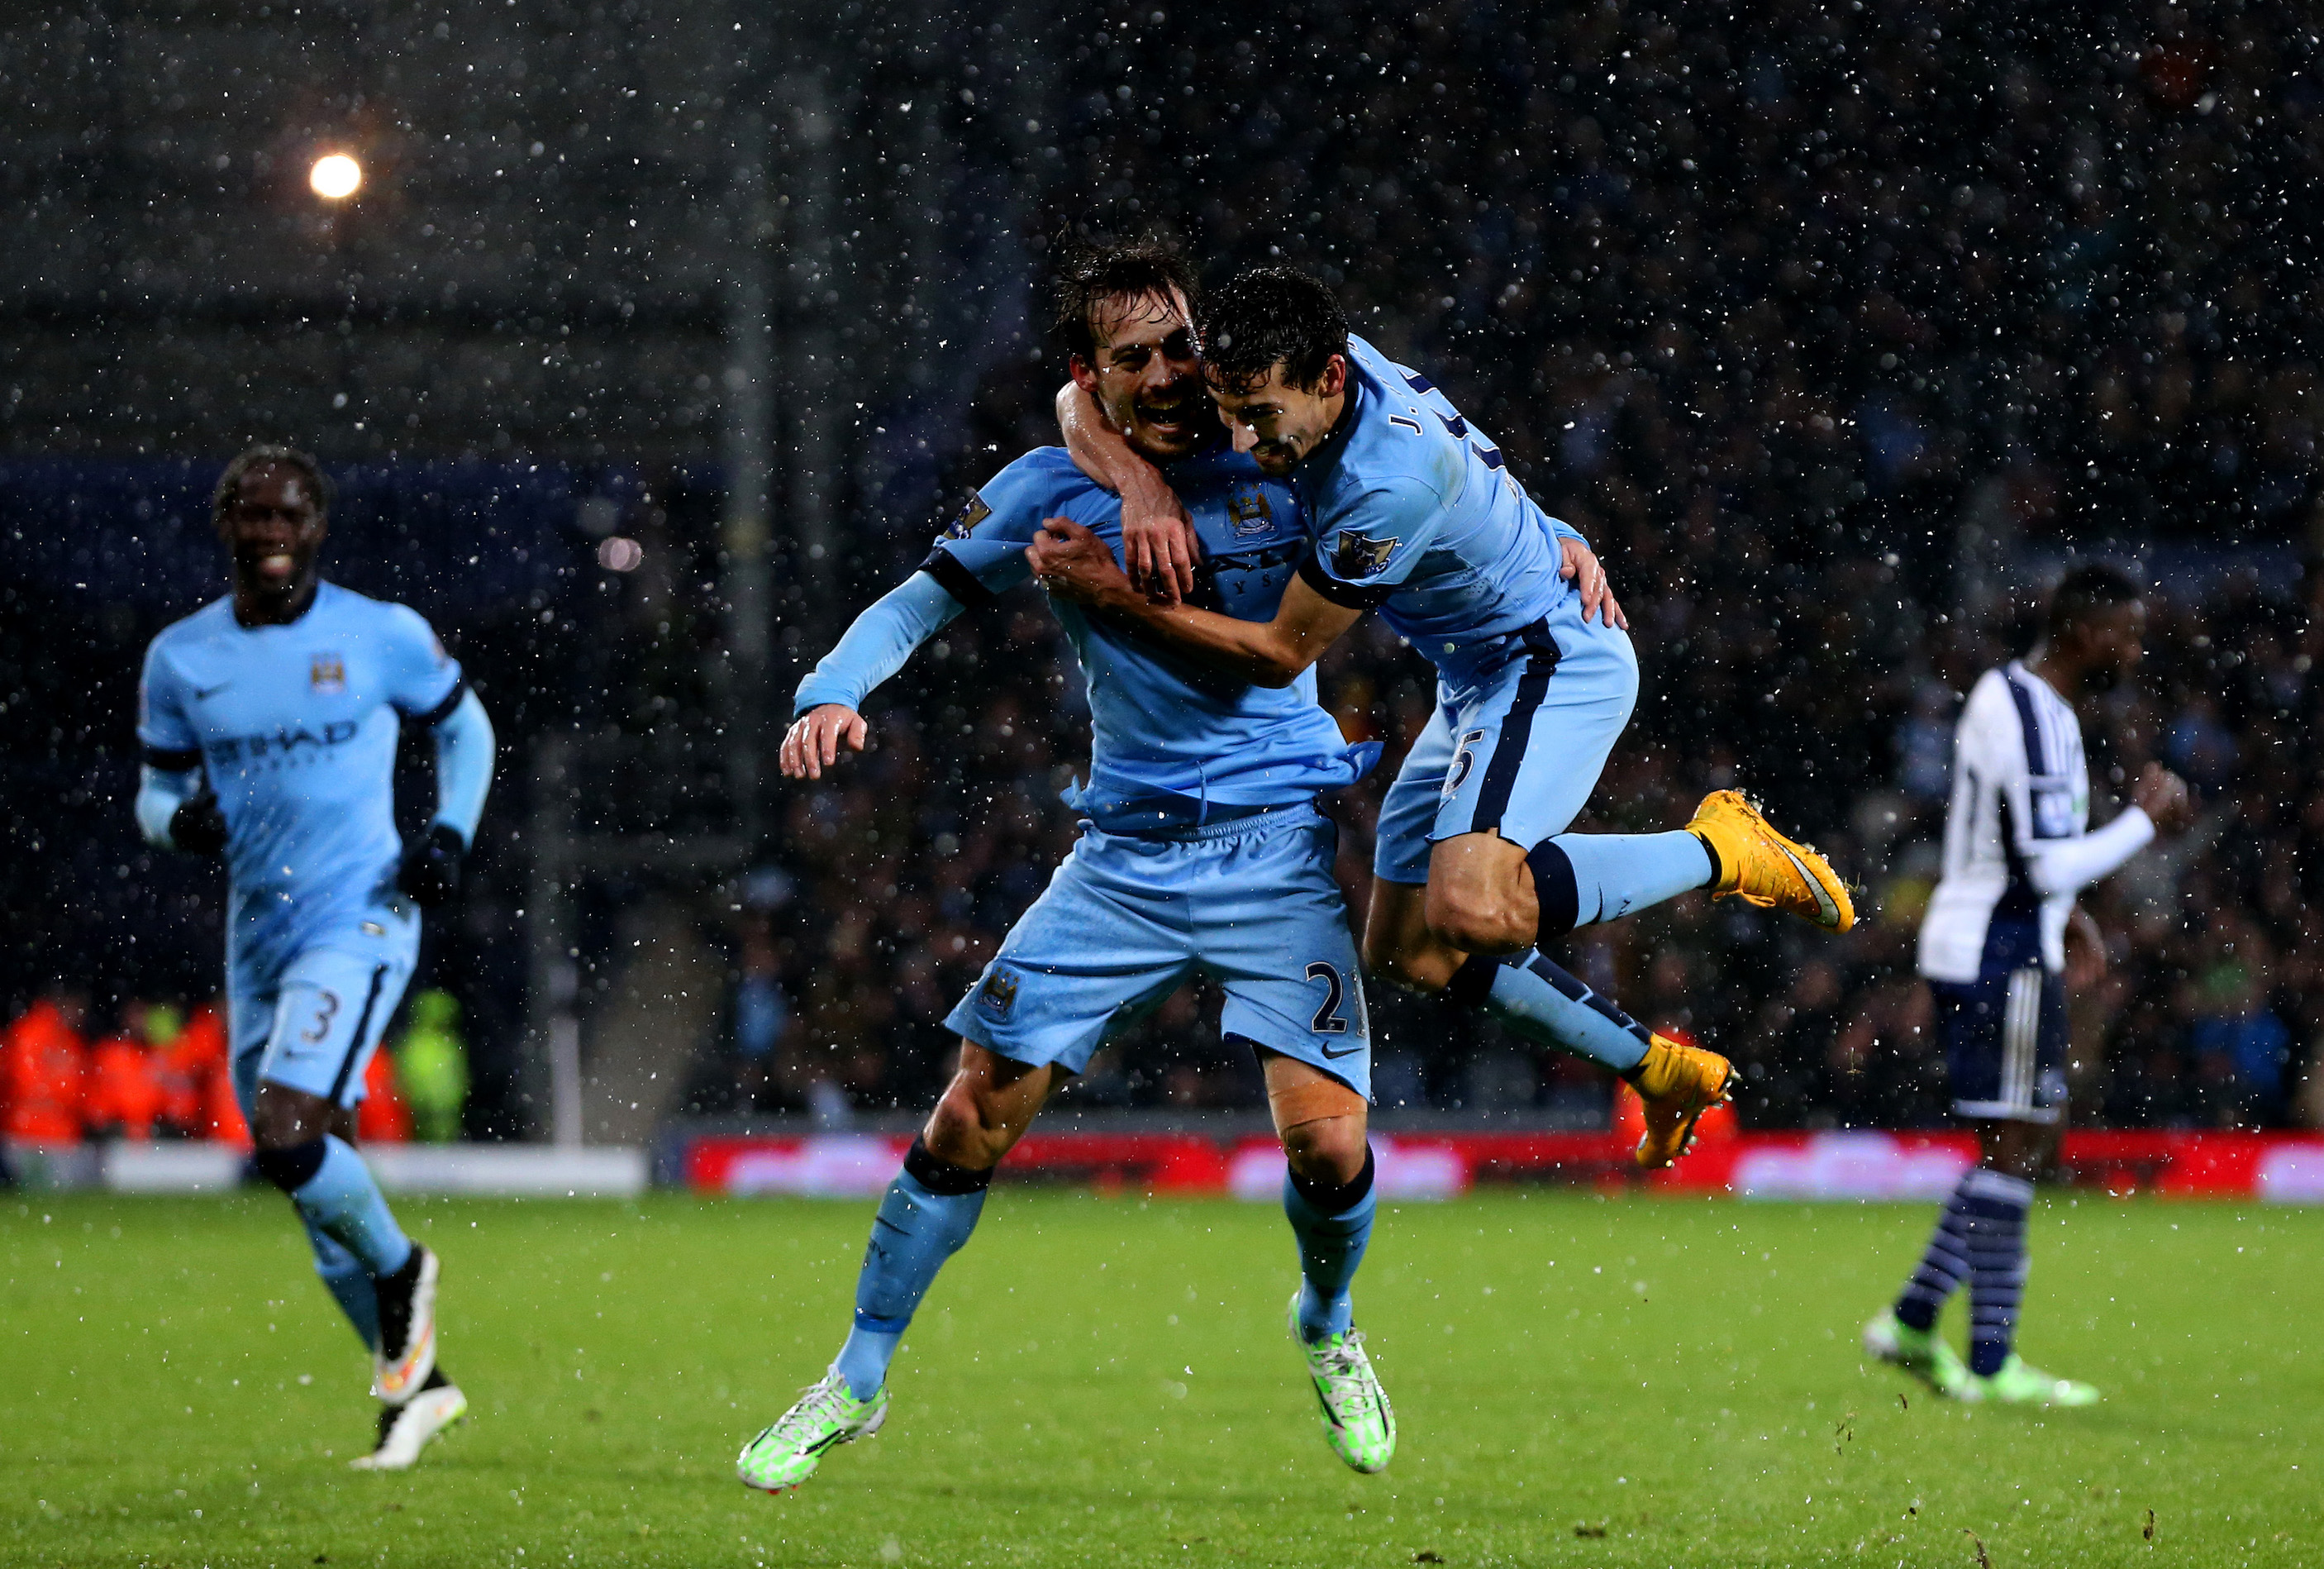 WEST BROMWICH, ENGLAND - DECEMBER 26: David Silva of Manchester City celebrates with team-mate Jesus Navas after scoring his team's third goal during the Barclays Premier League match between West Bromwich Albion and Manchester City at The Hawthorns on December 26, 2014 in West Bromwich, England. (Photo by Scott Heavey/Getty Images)